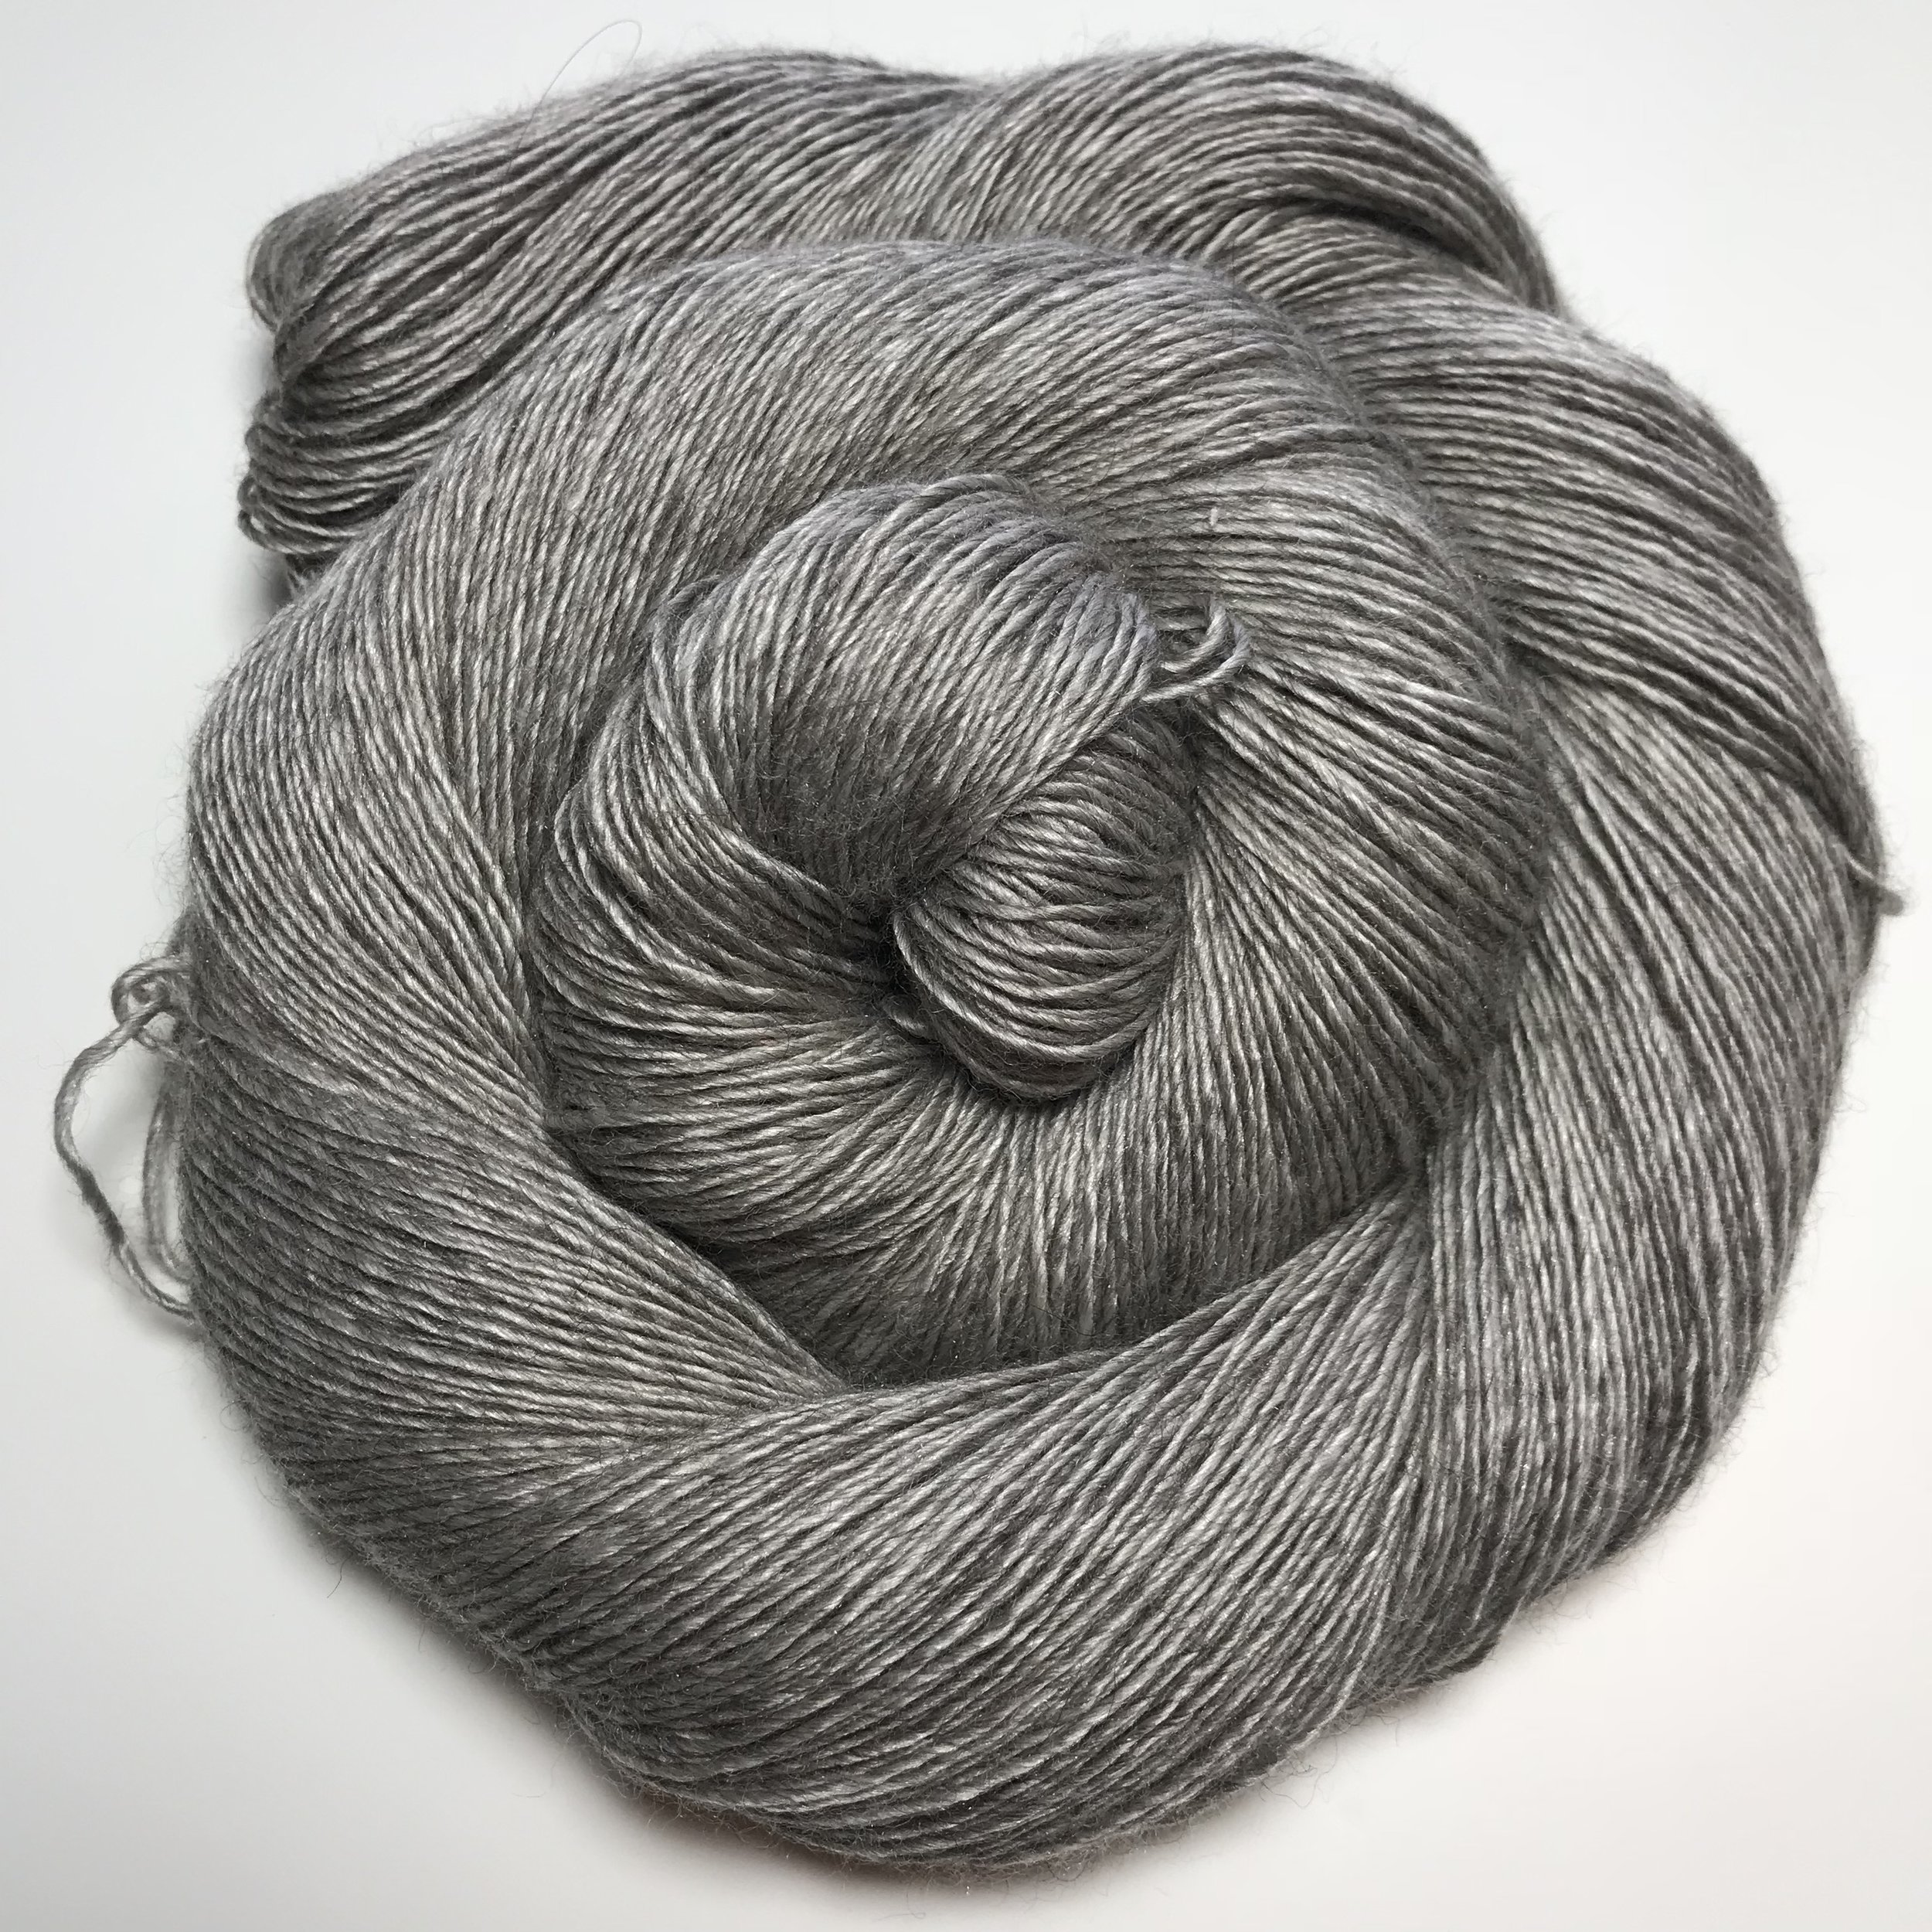 Wooly Silky Yak - $45 This is a gorgeous single ply fingering yarn that is 65% SW Merino/ 20% Silk/ 15% Yak. Its a very soft luxury fiber that dyes up beautifully over the gray fiber. It's also gorgeous by itself. Recommended Needle Size: 2.5 - 4mm needles. Gauge (stocking stitch): 28sts x 36 rows over 10cm/4 inches on 3.25mm (US 3) needles. 120g/523yds